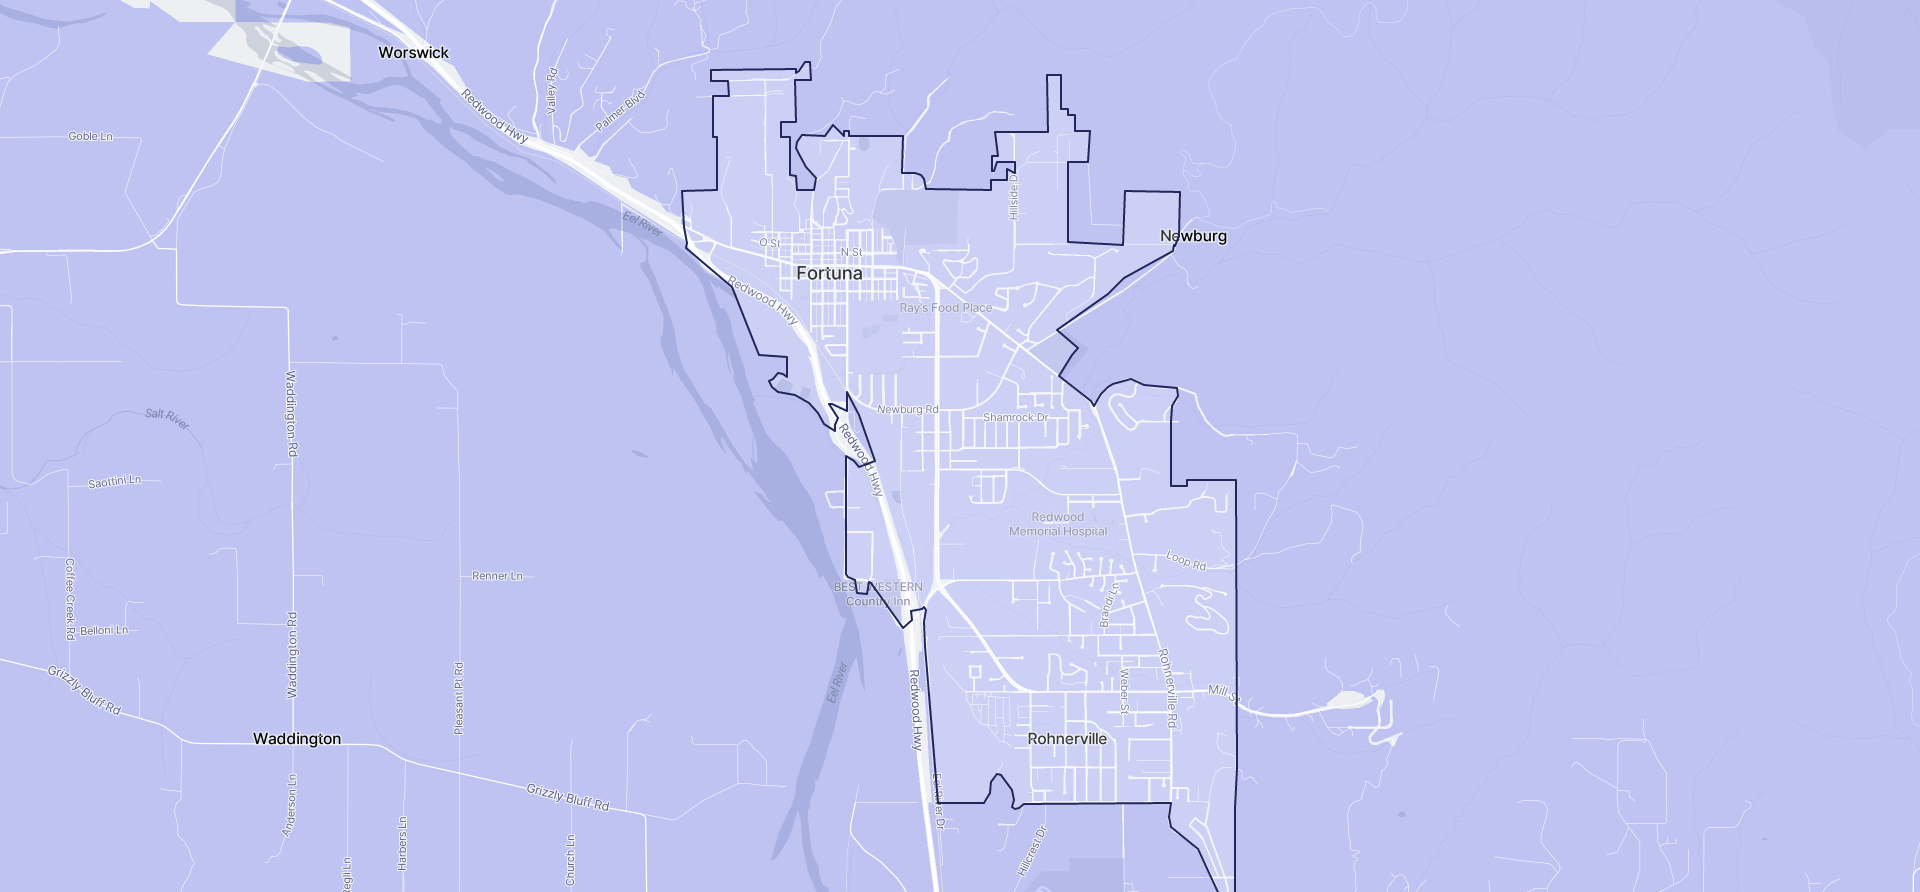 Image of Fortuna boundaries on a map.